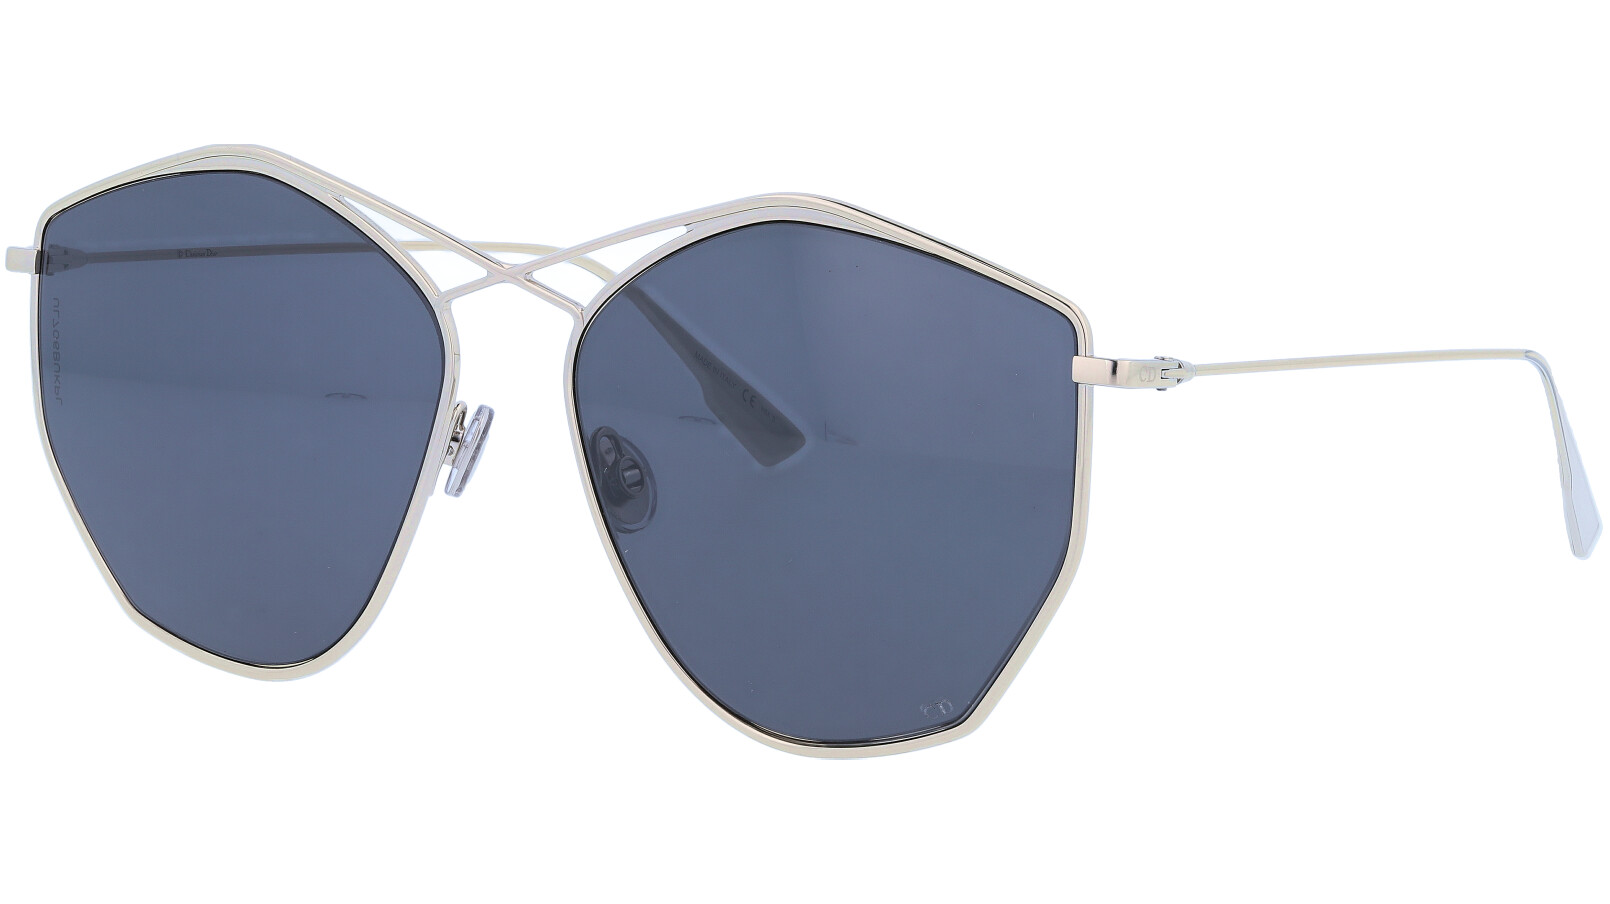 DIOR DIORSTELLAIRE4 3YGIR 59 LIGHT Sunglasses